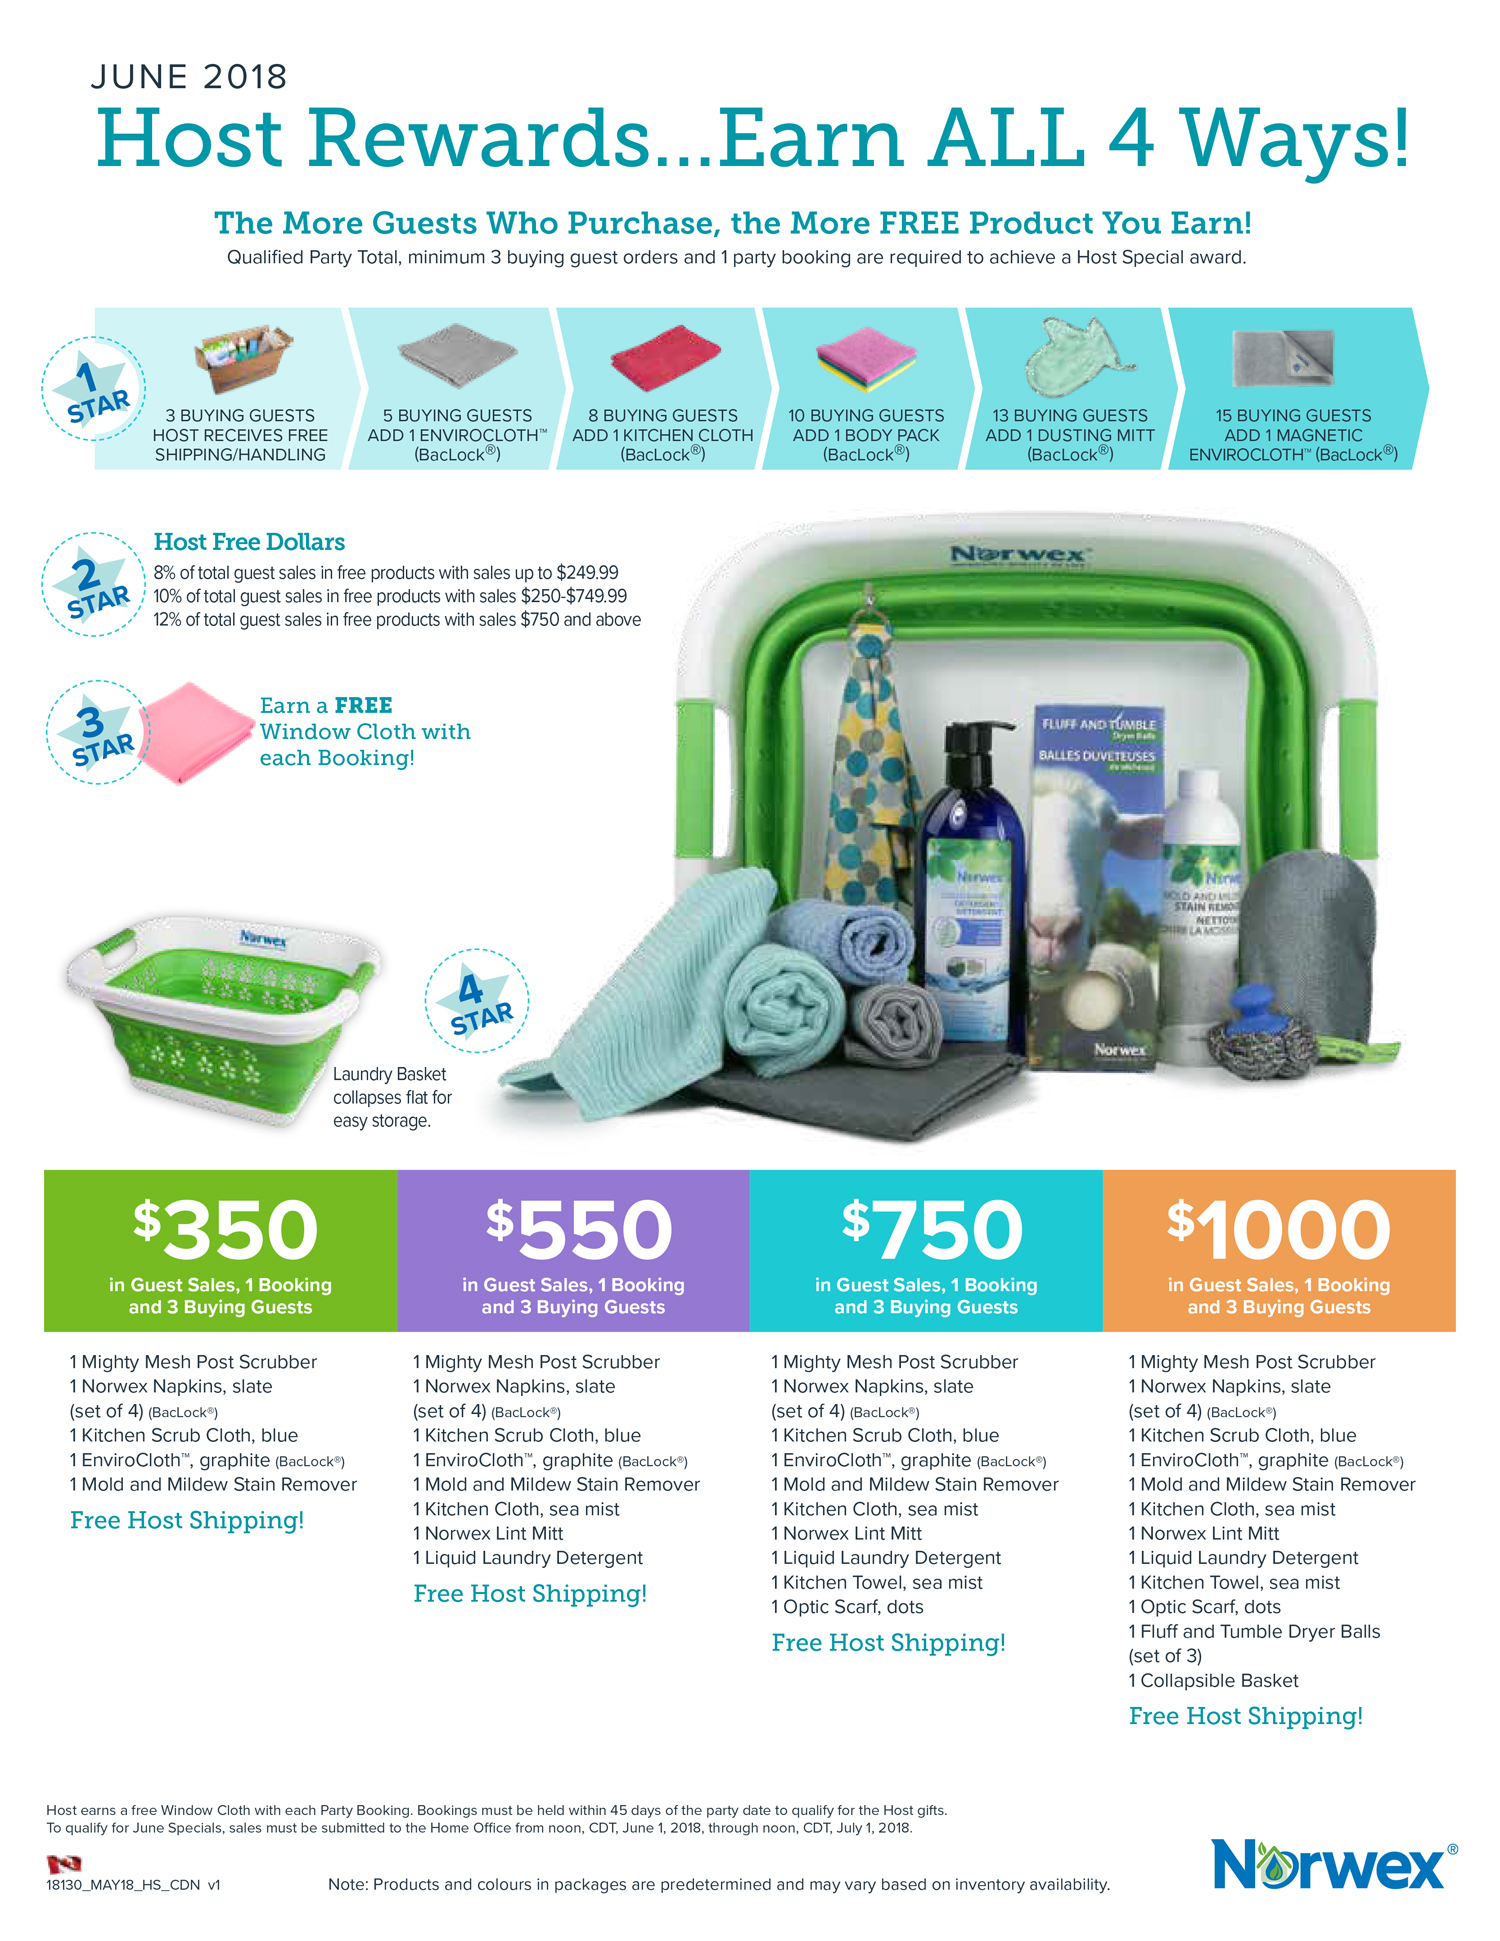 Host A Norwex Party Reap The Rewards Clean Natural Living With